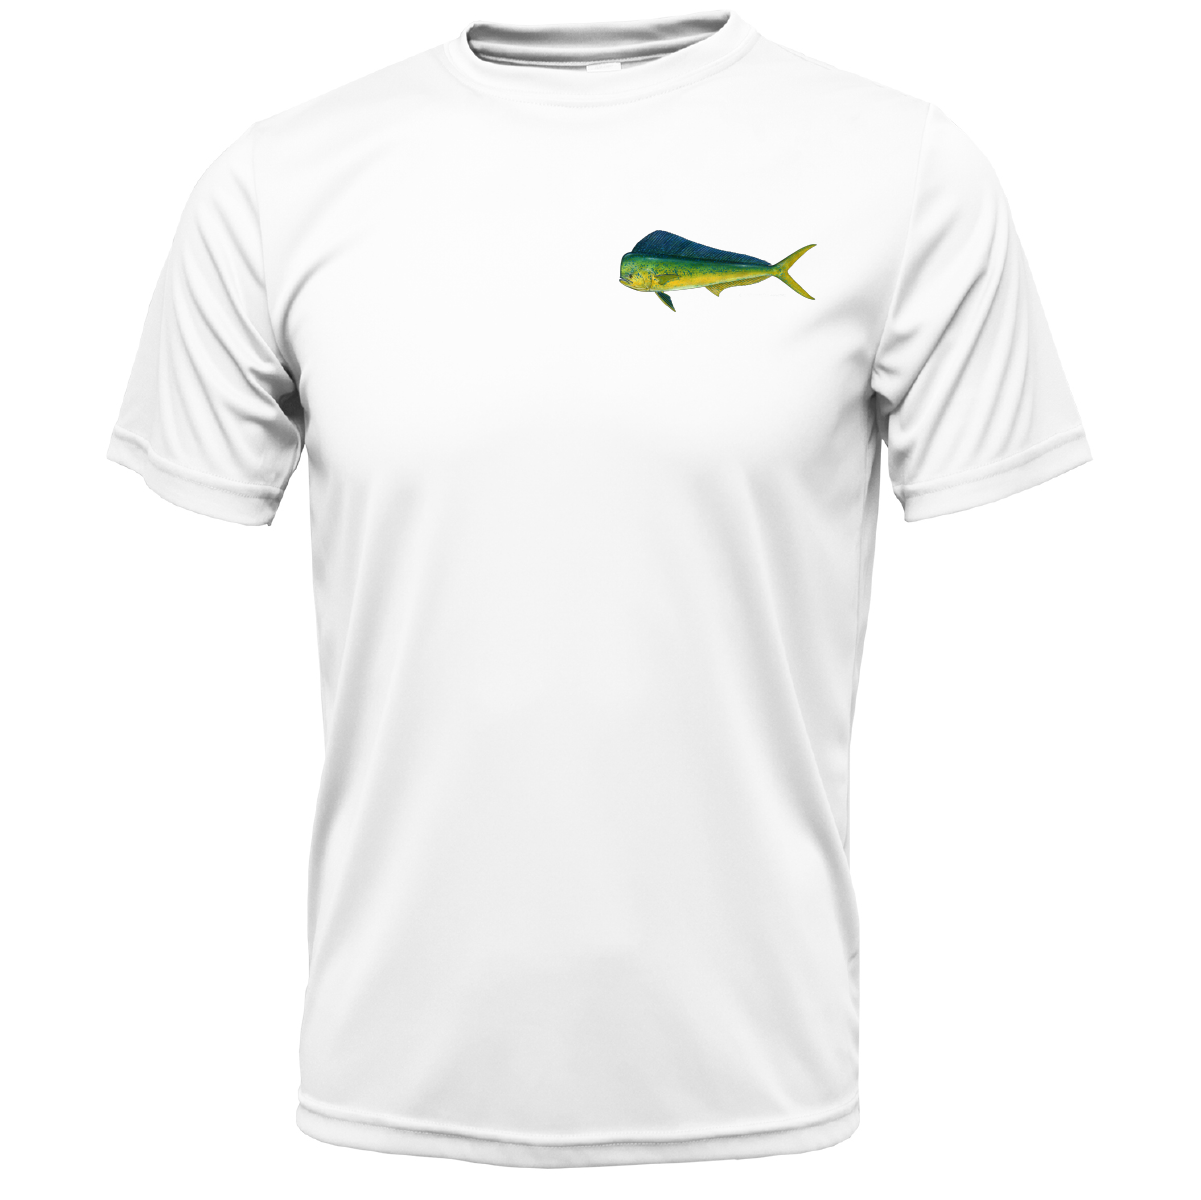 Mahi on Chest Short Sleeve UPF 50+ Dry-Fit Shirt